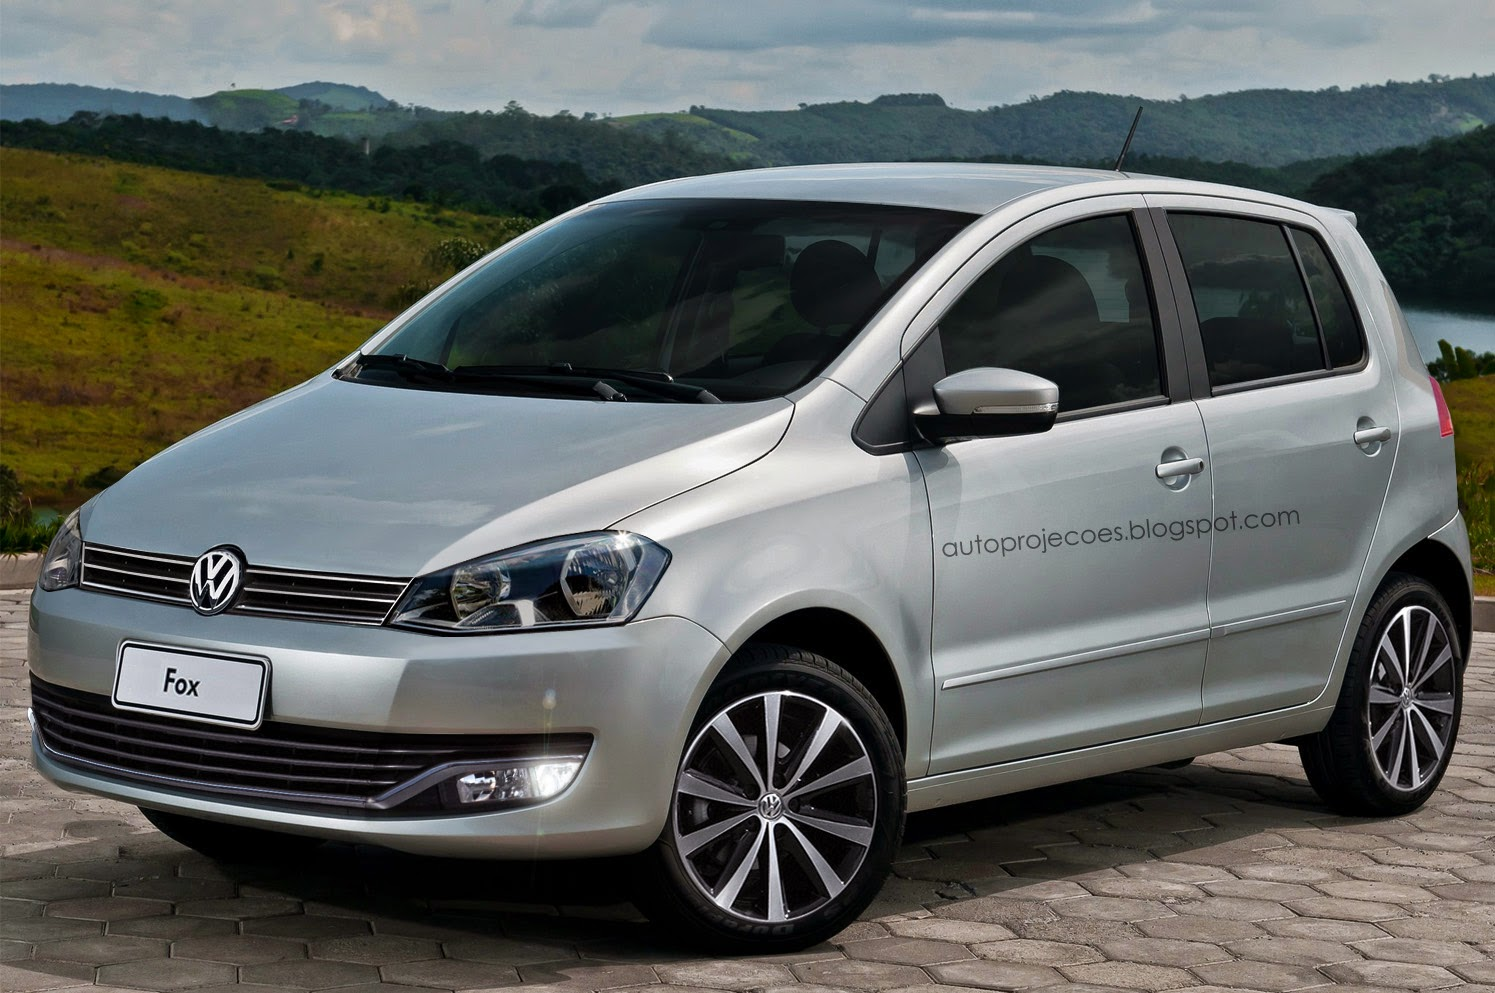 proje o volkswagen fox 2015 auto proje es. Black Bedroom Furniture Sets. Home Design Ideas